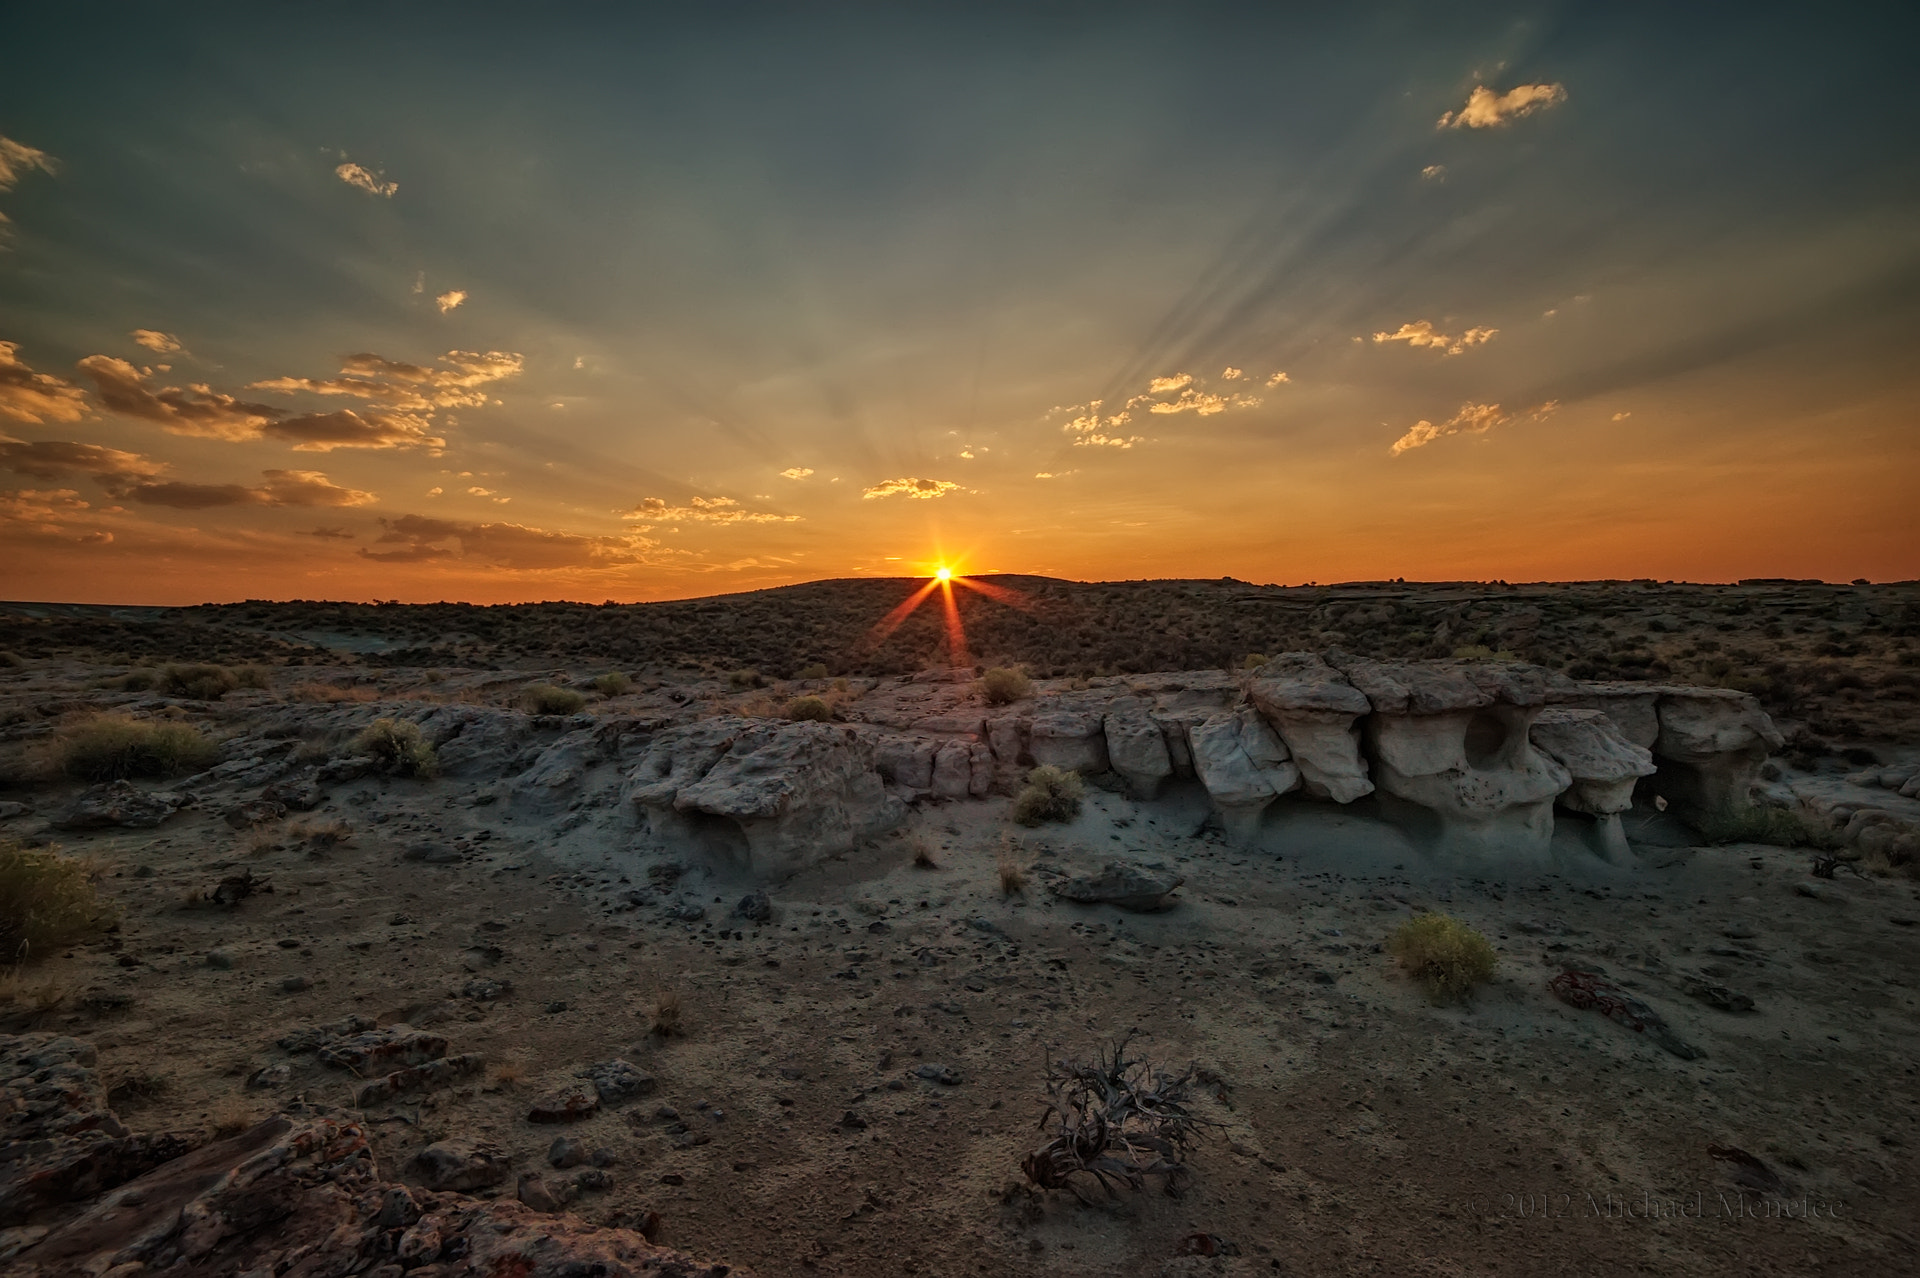 Photograph Dusk Falls on Wyoming's Red Desert by Michael Menefee on 500px